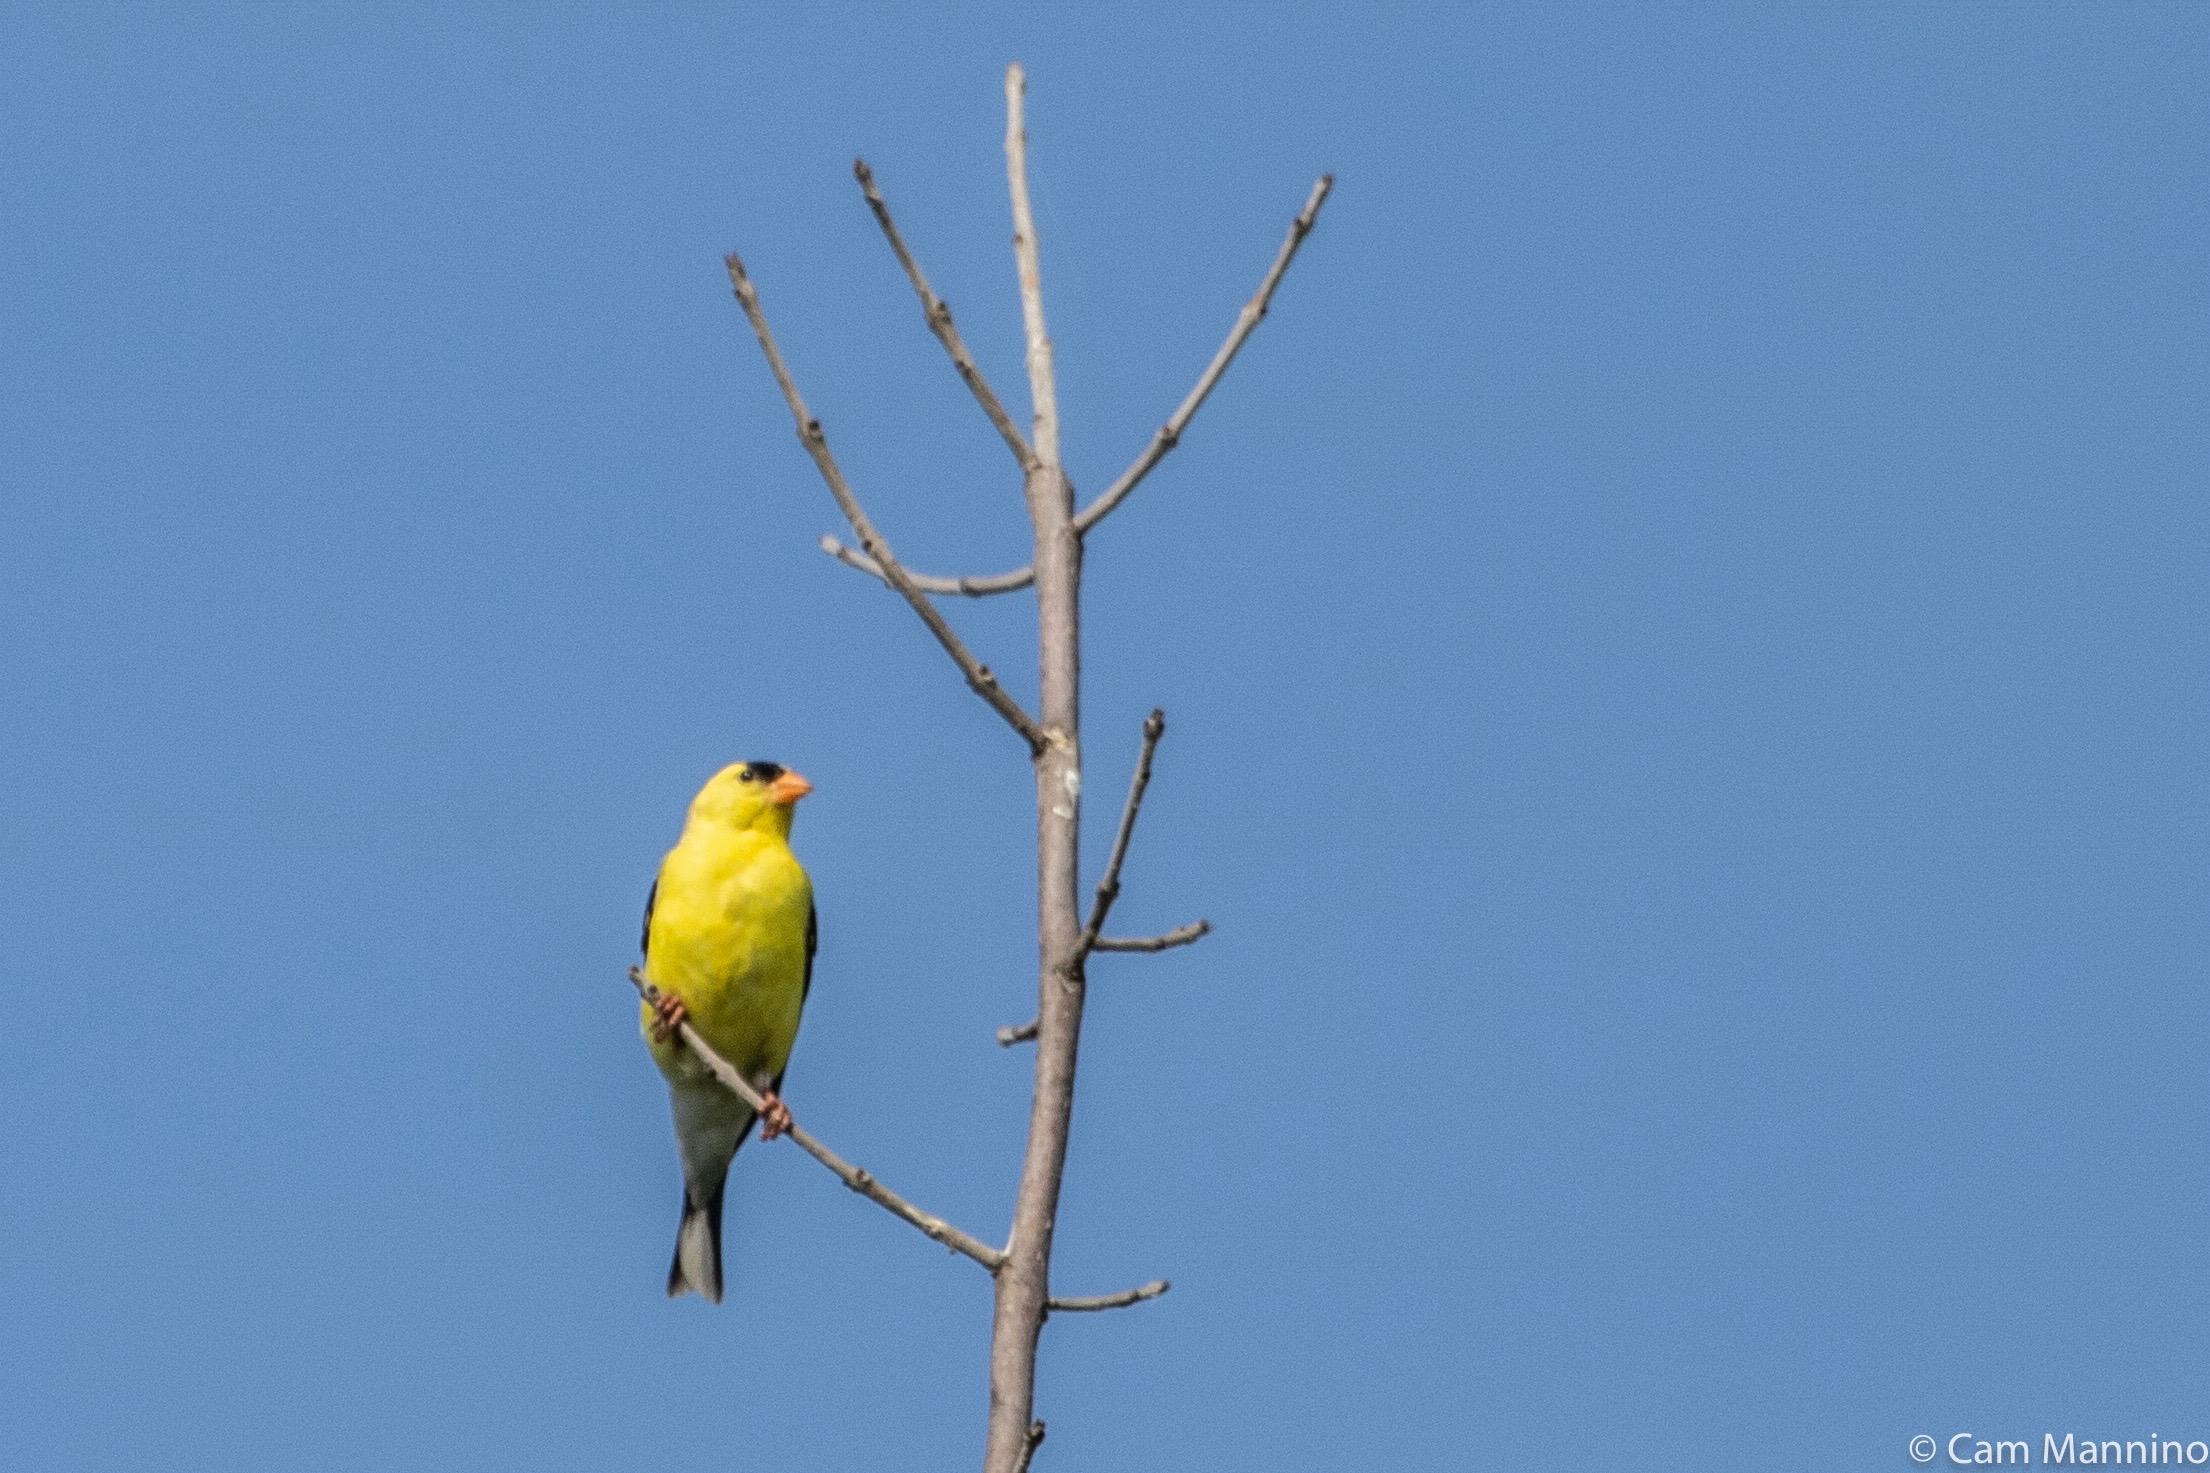 Goldfinch male DTL | Natural Areas Notebook